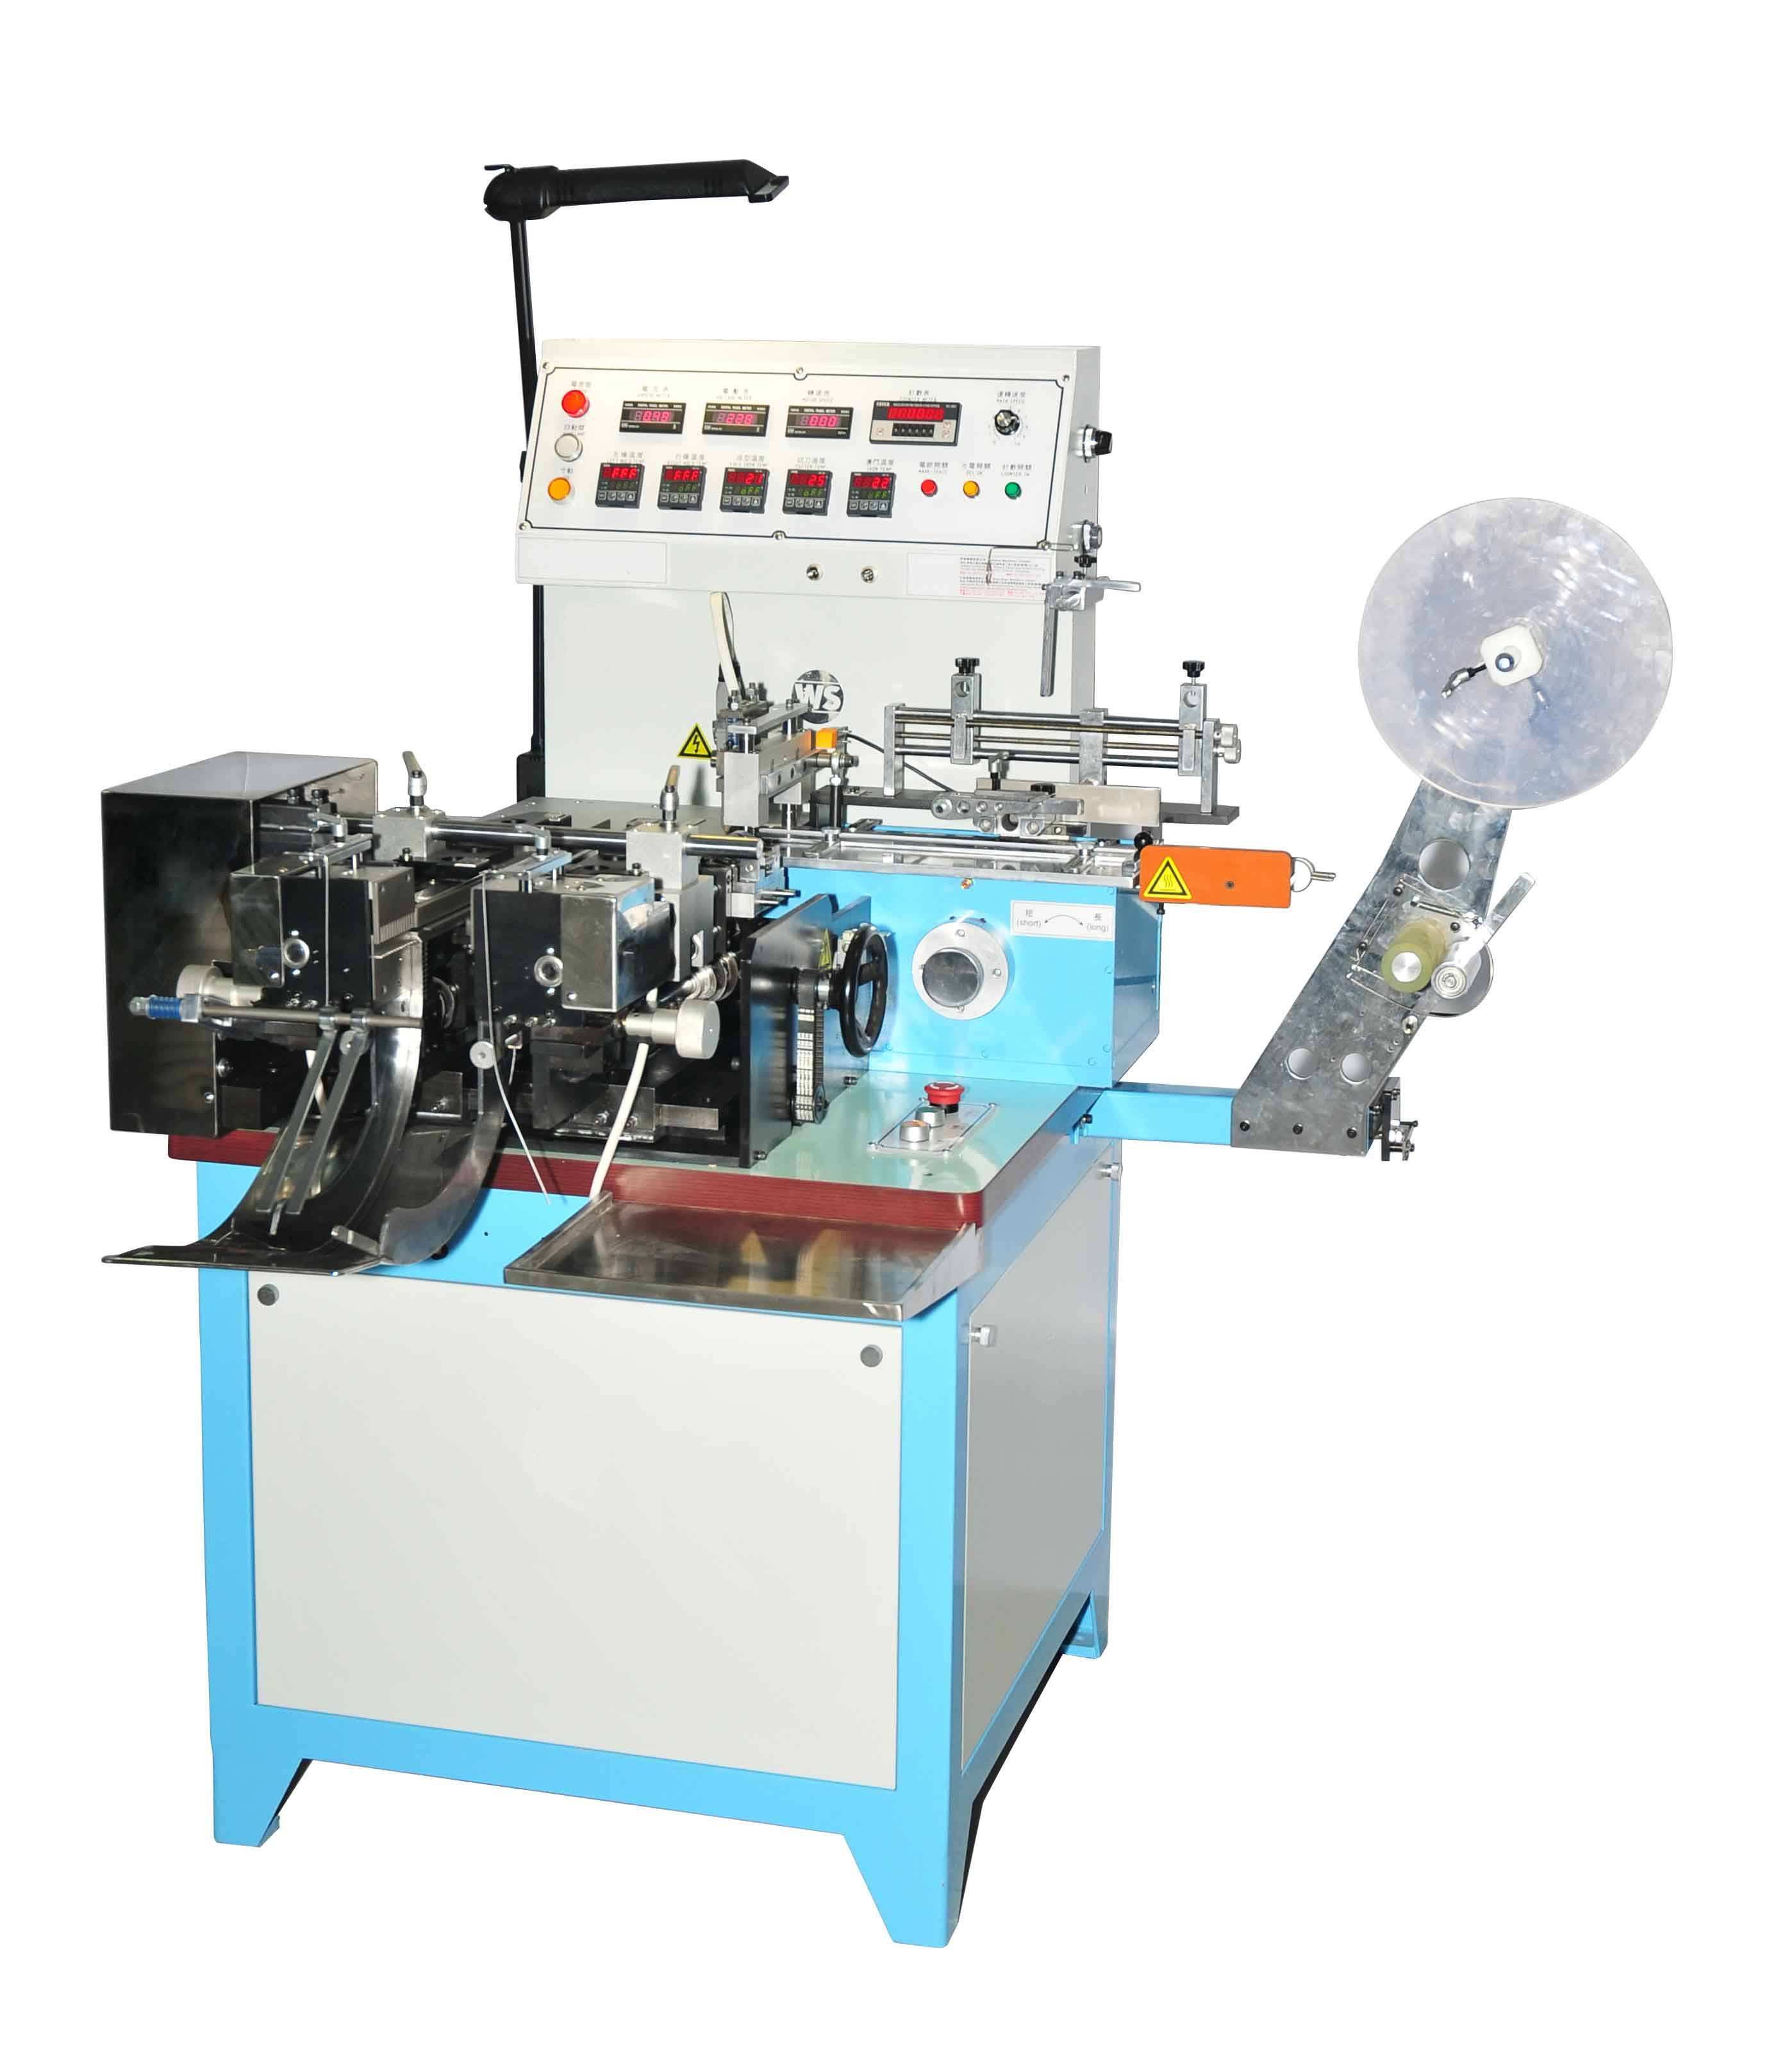 Multi-Function Label Cutting & Folding Machine (HY-586S)